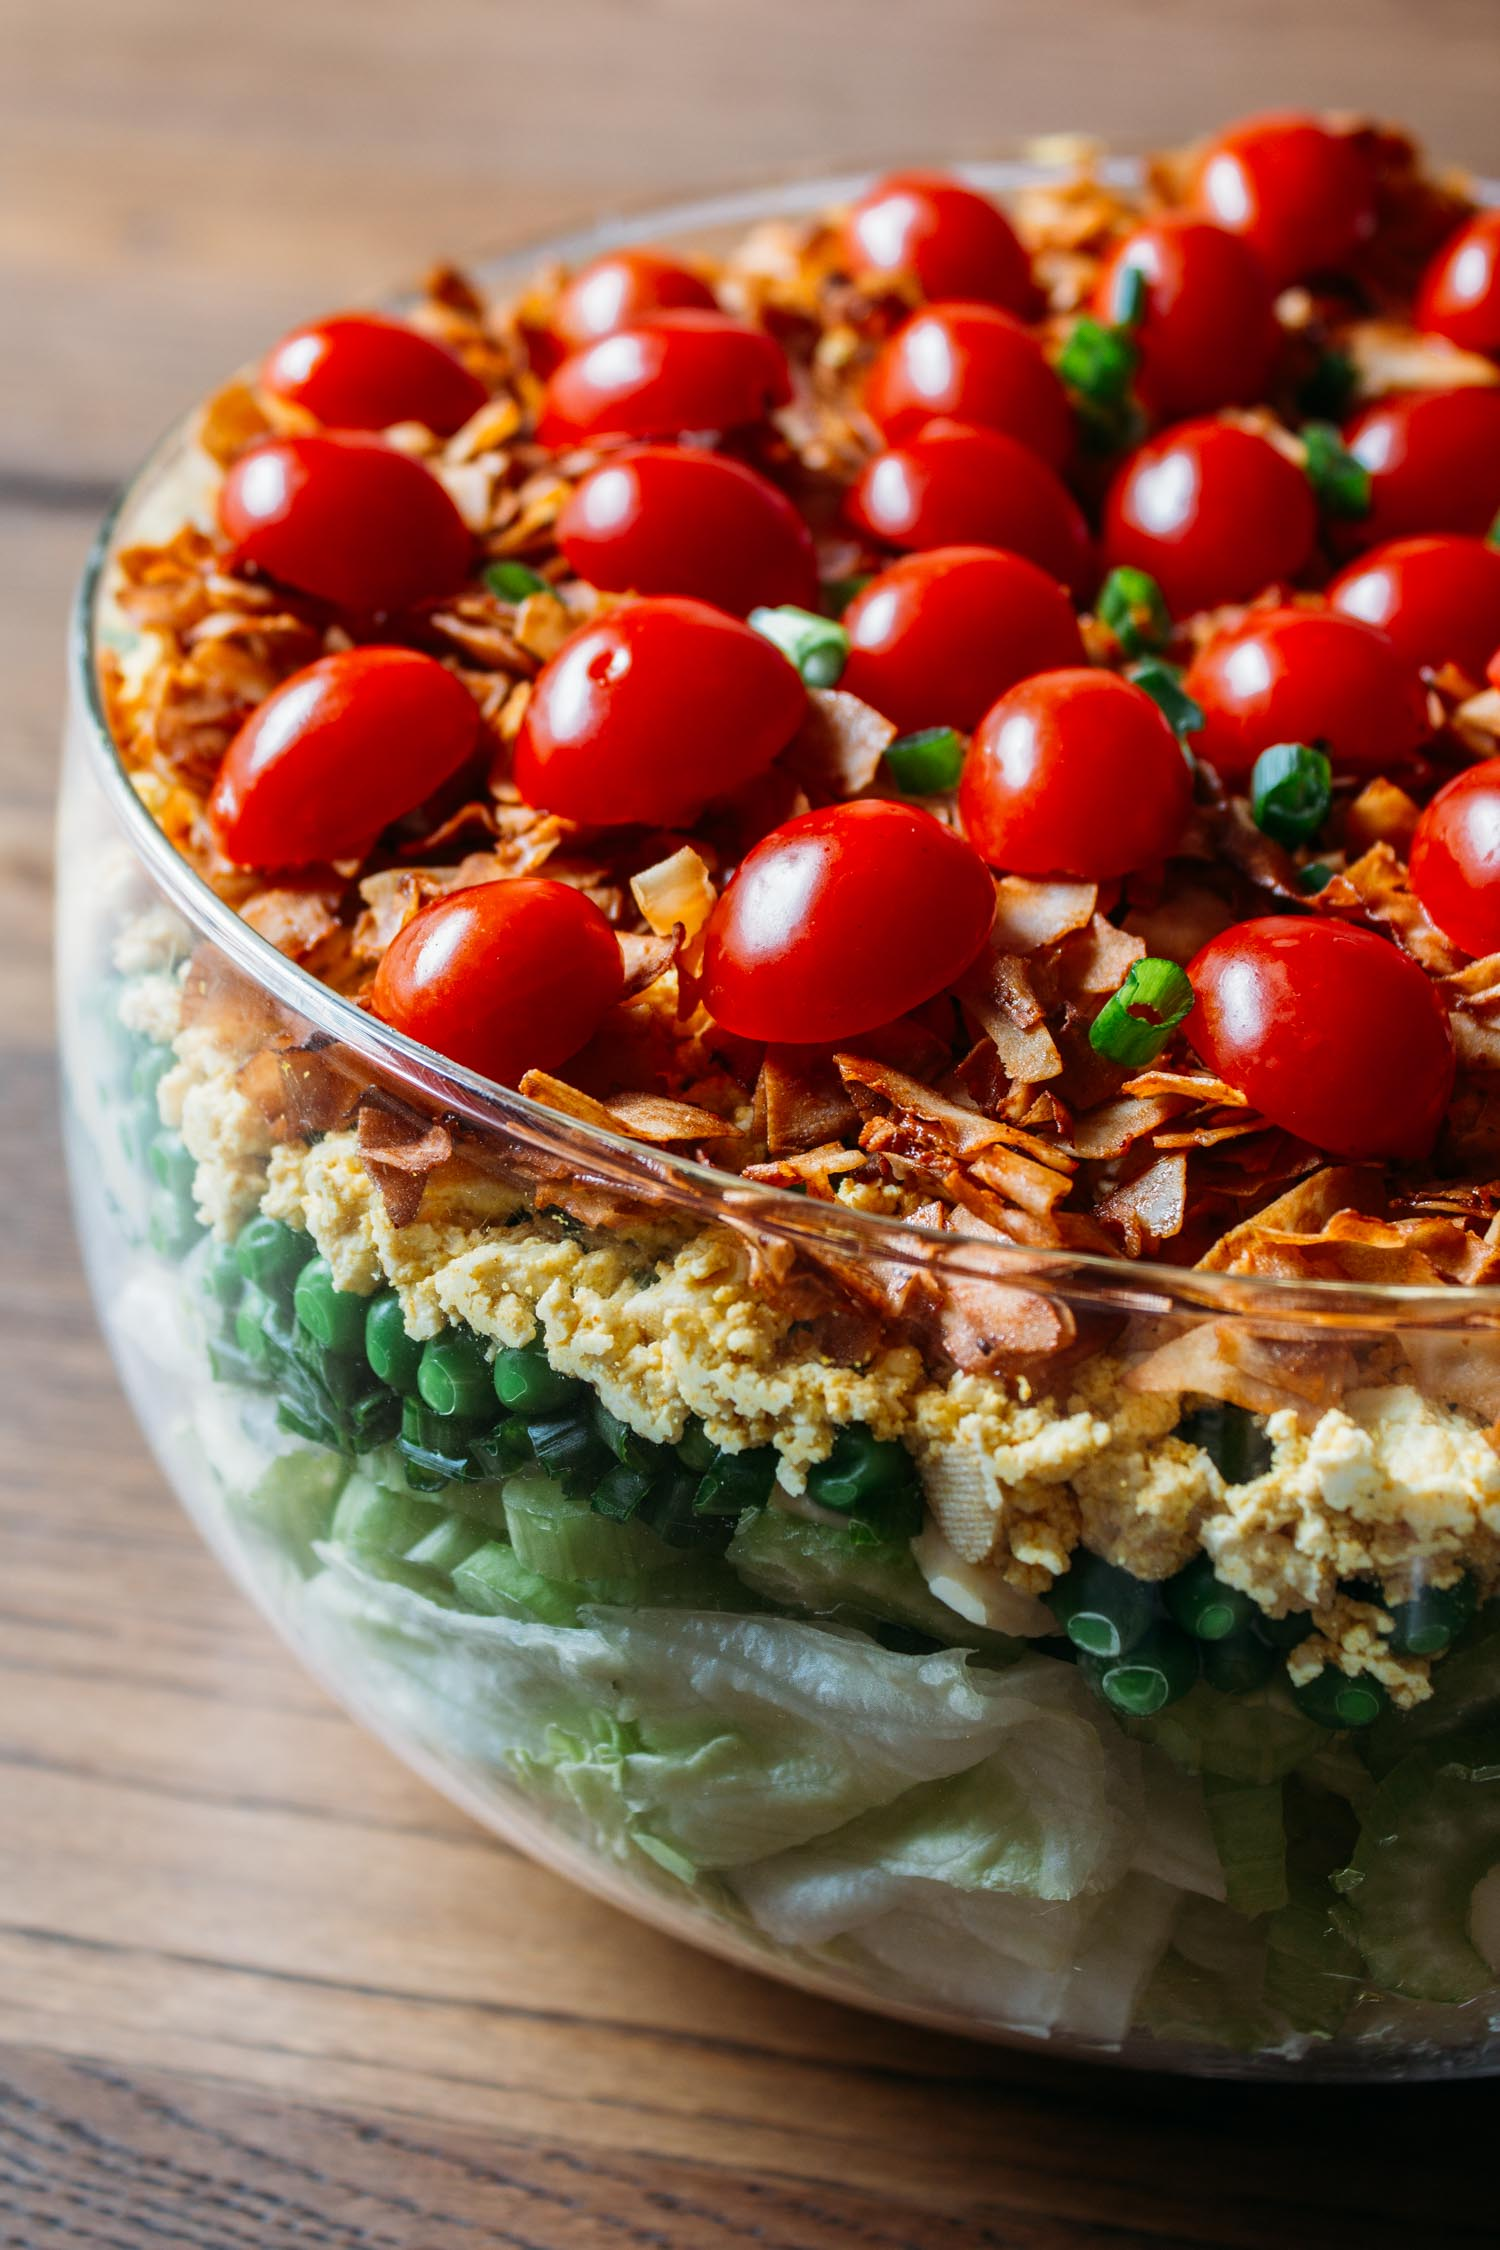 Vegan 7-Layer Salad #salad #meatless #vegan #vegetarian #holidays #entertaining #recipe #Christmas #Thanksgiving #7 Layer #southern #comfort #bacon #tofu #tomatoes #peas #mayonnaise #plant based #gluten free #wfphno #wfpb #side #dairy free